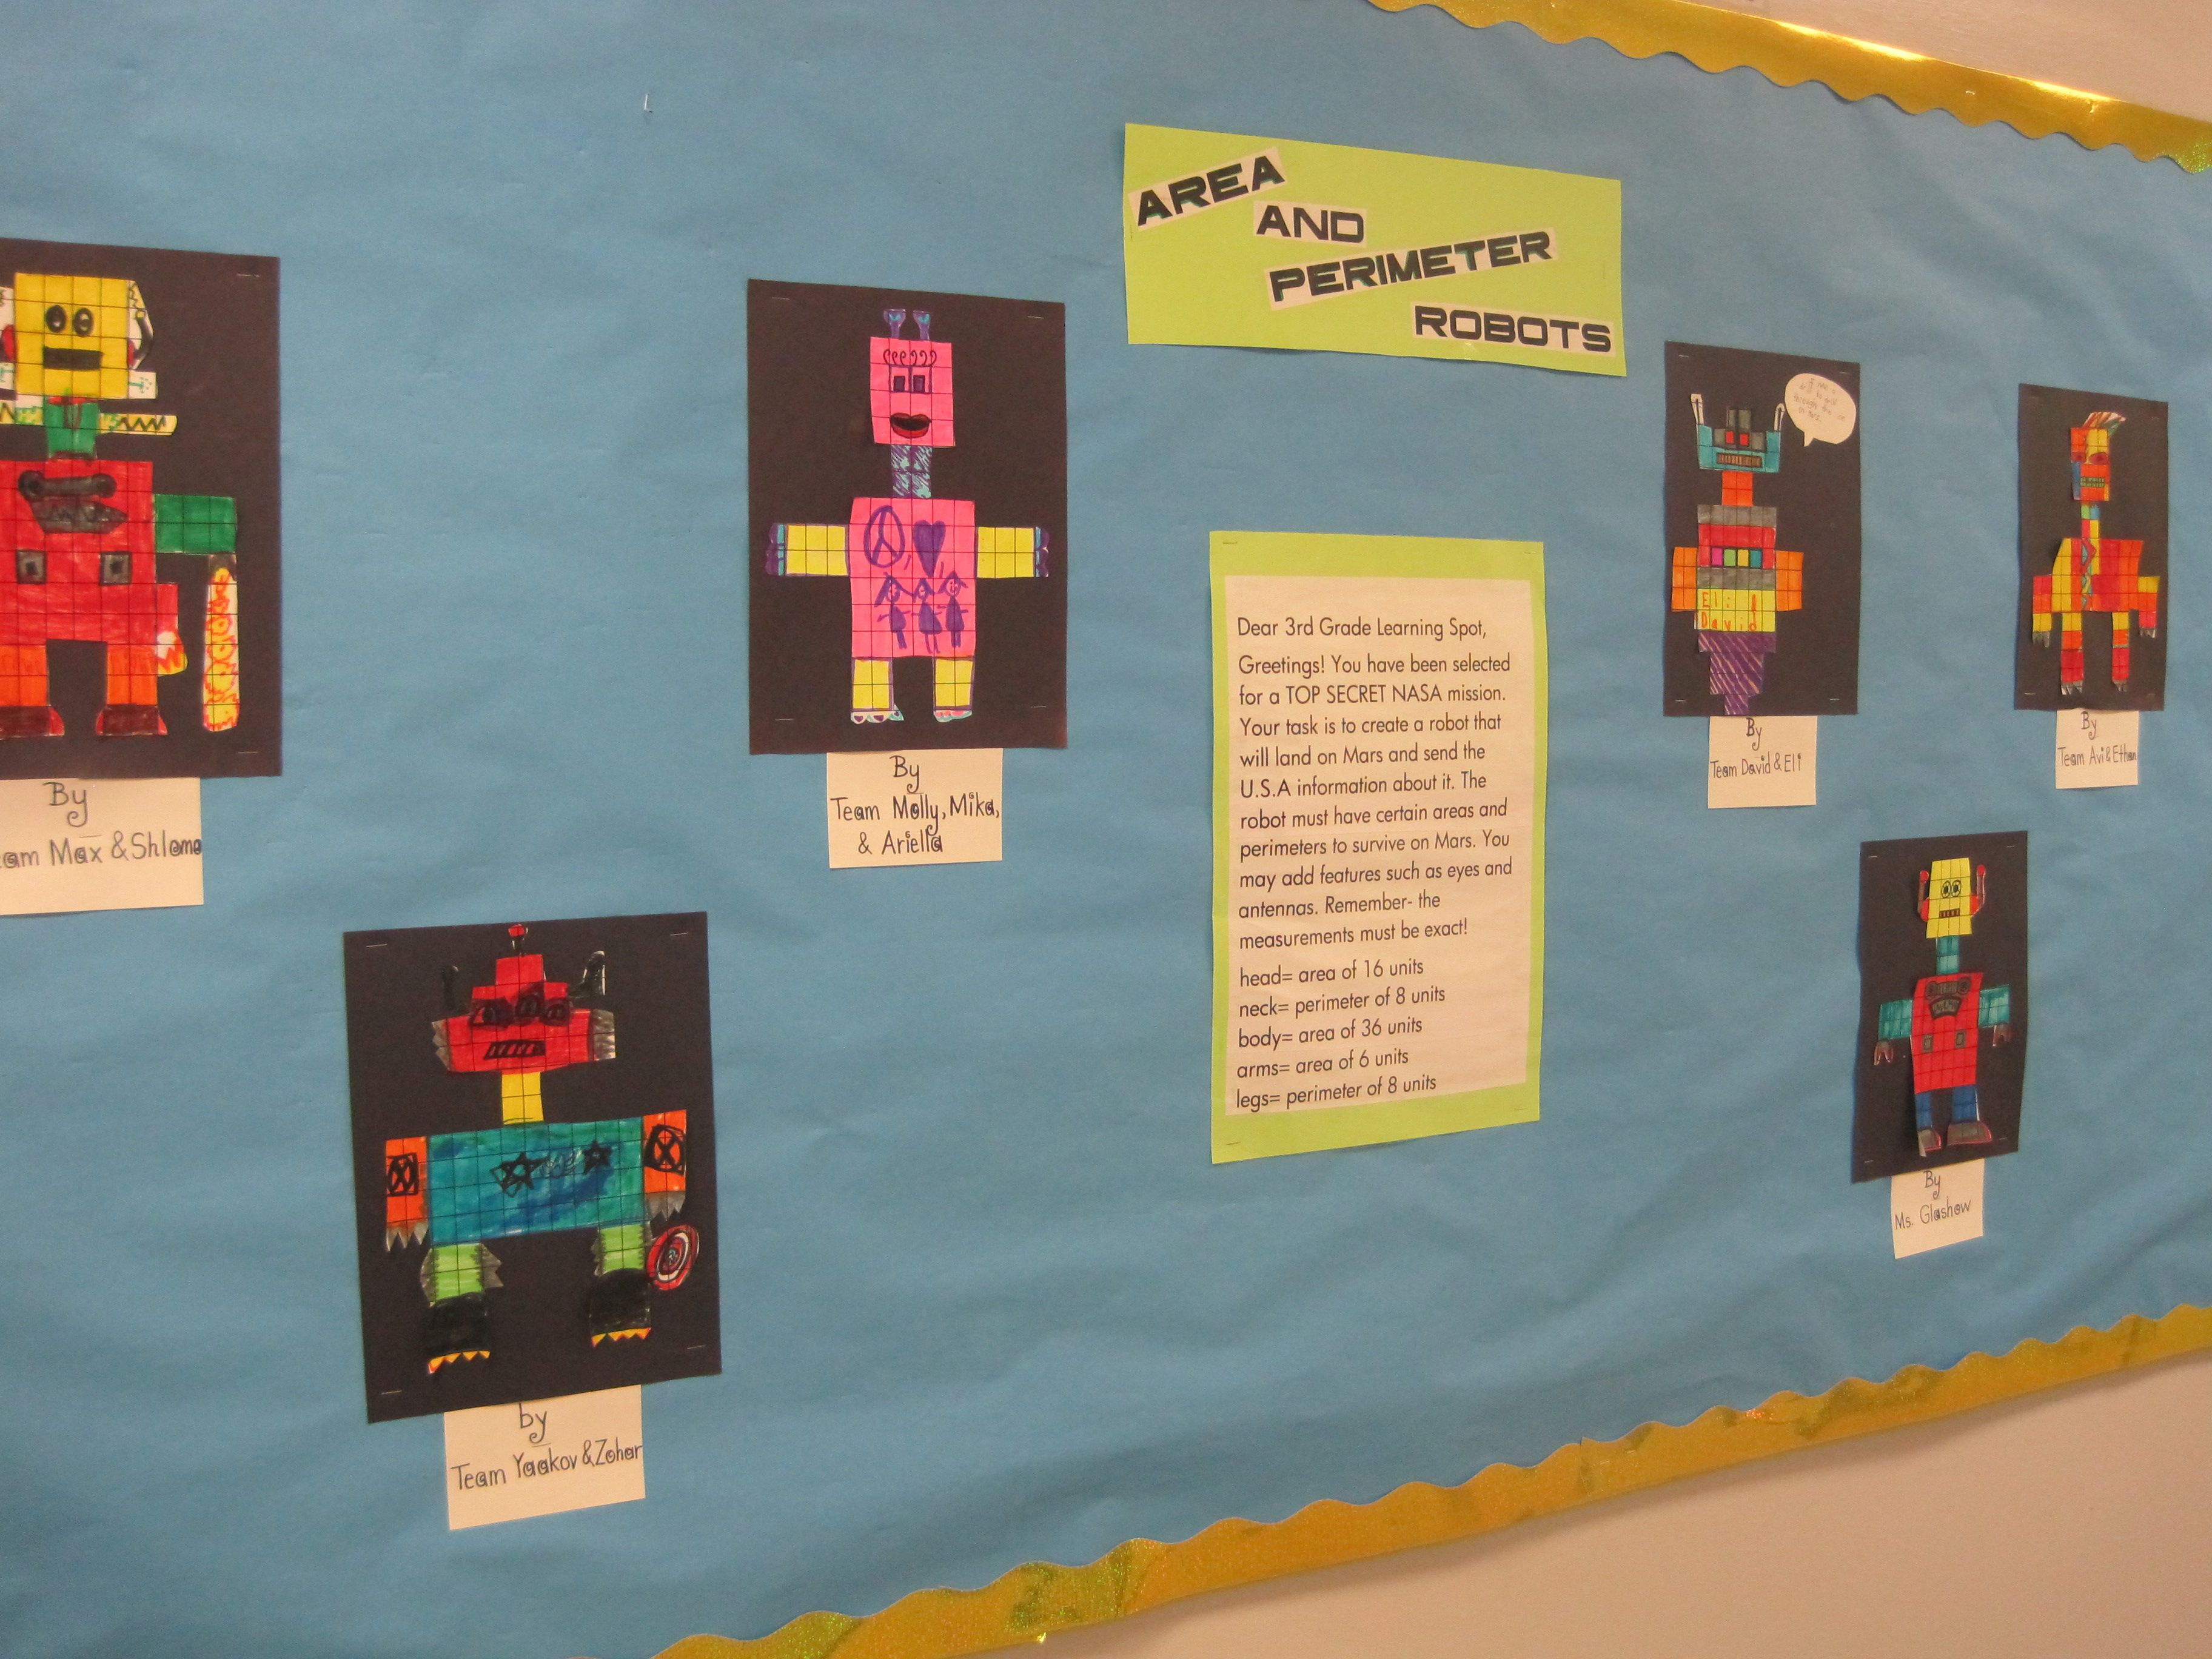 Perimeter And Area Robots Adapted From A Teaching Site I